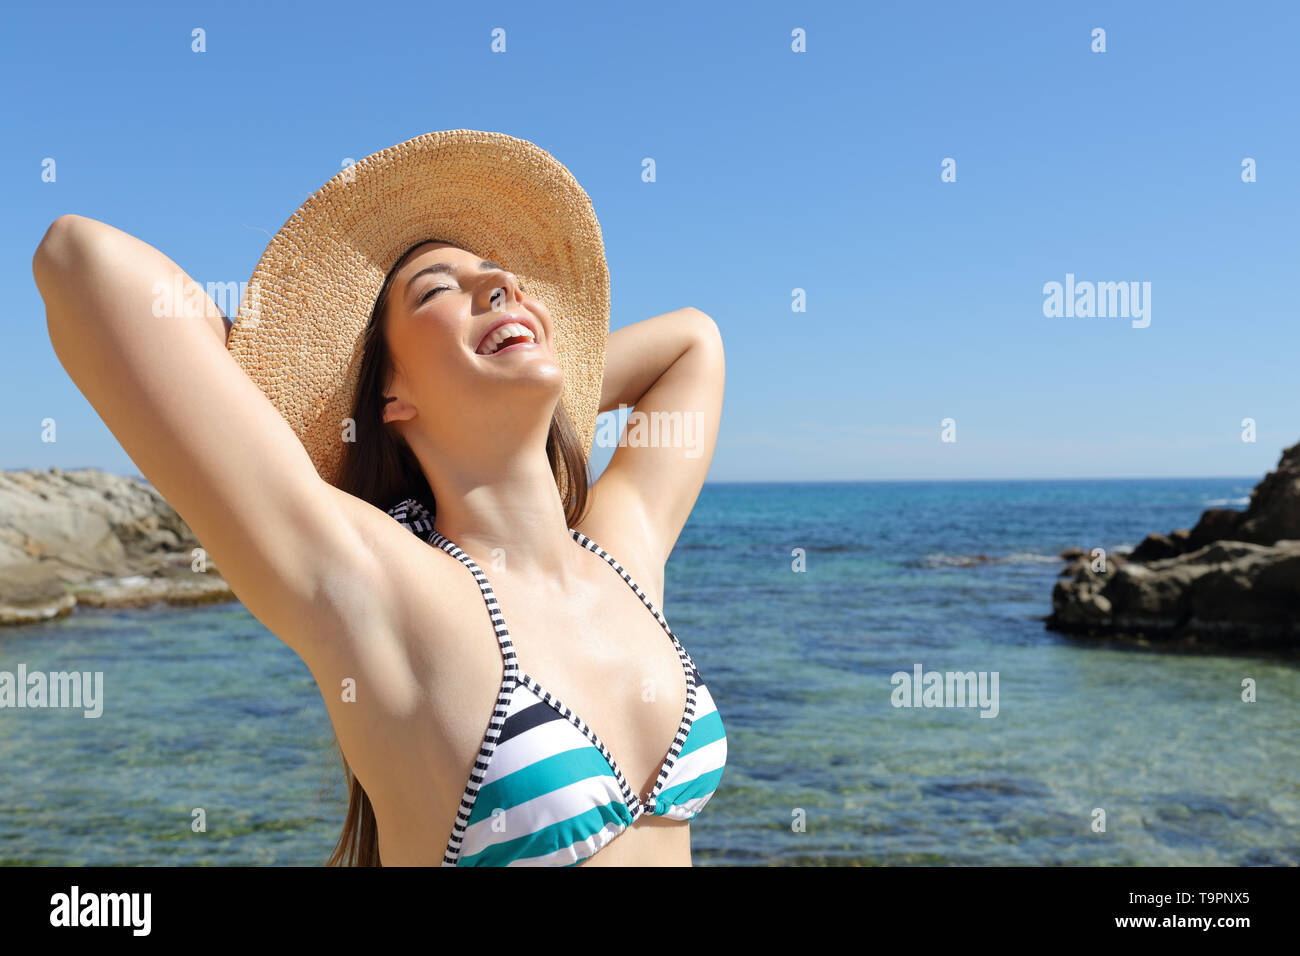 Satisfied tourist enjoying summer vacation and sun on the beach - Stock Image